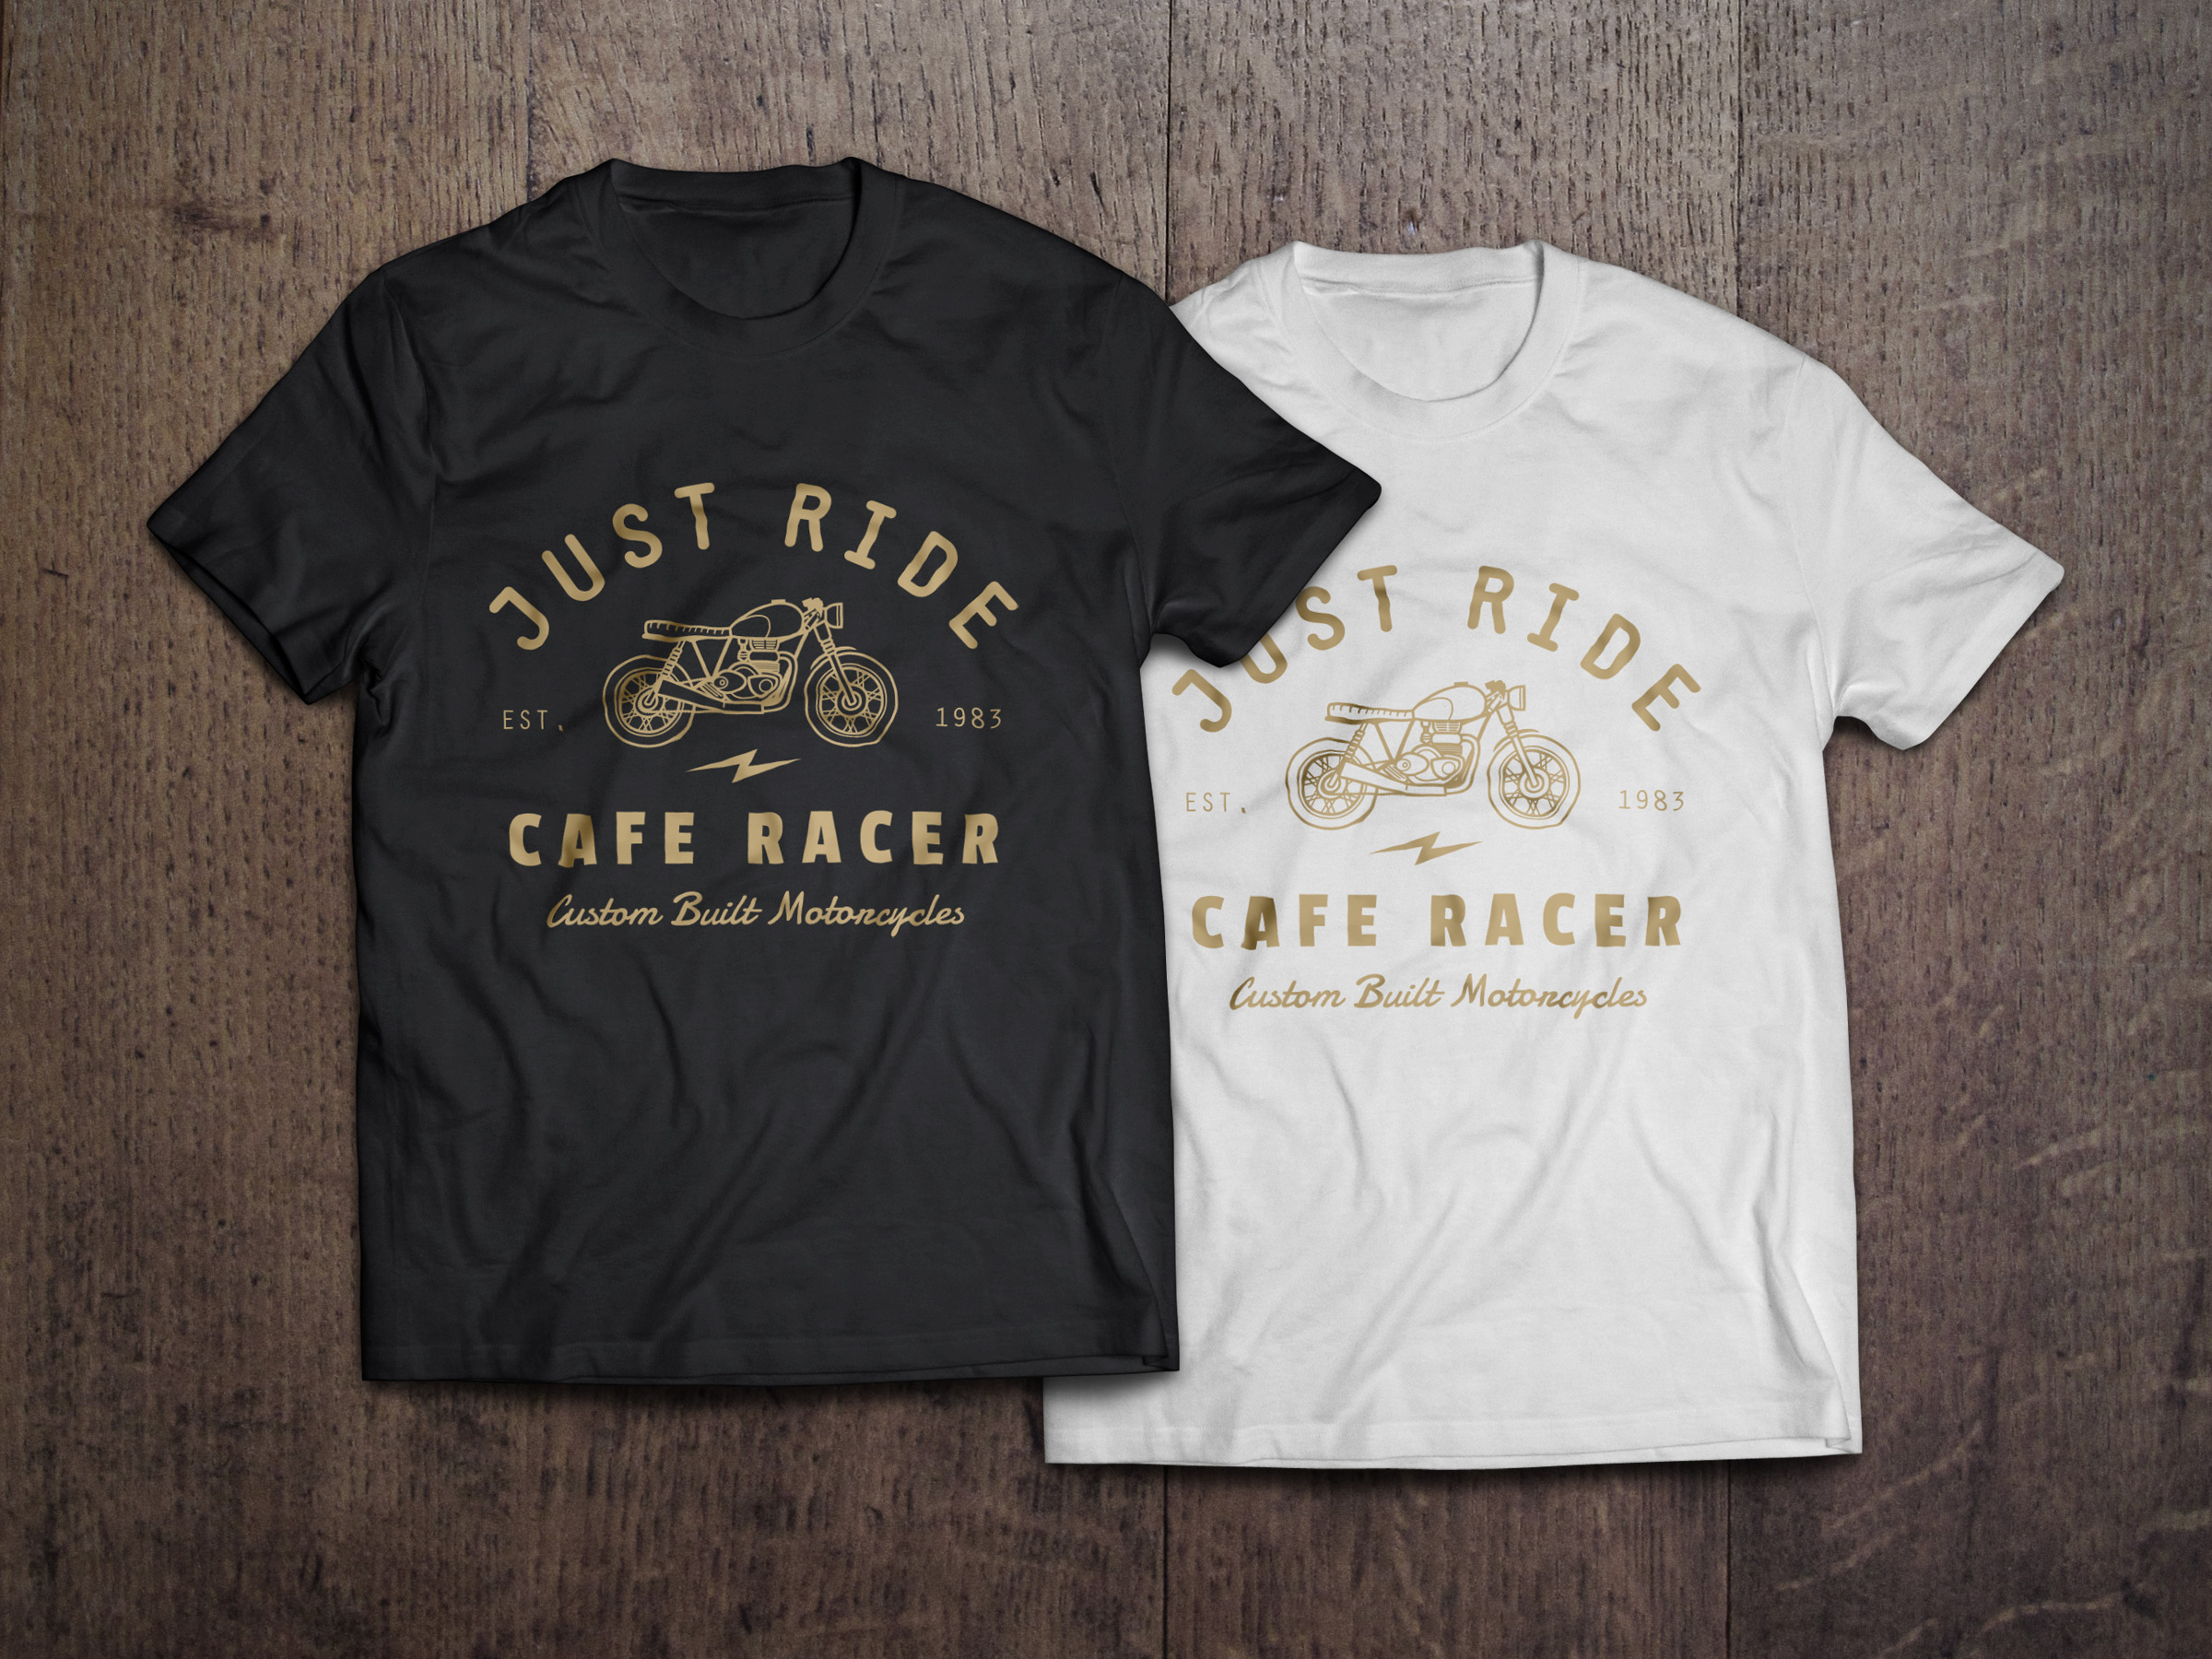 16 Black T- Shirt Mockup PSD Images